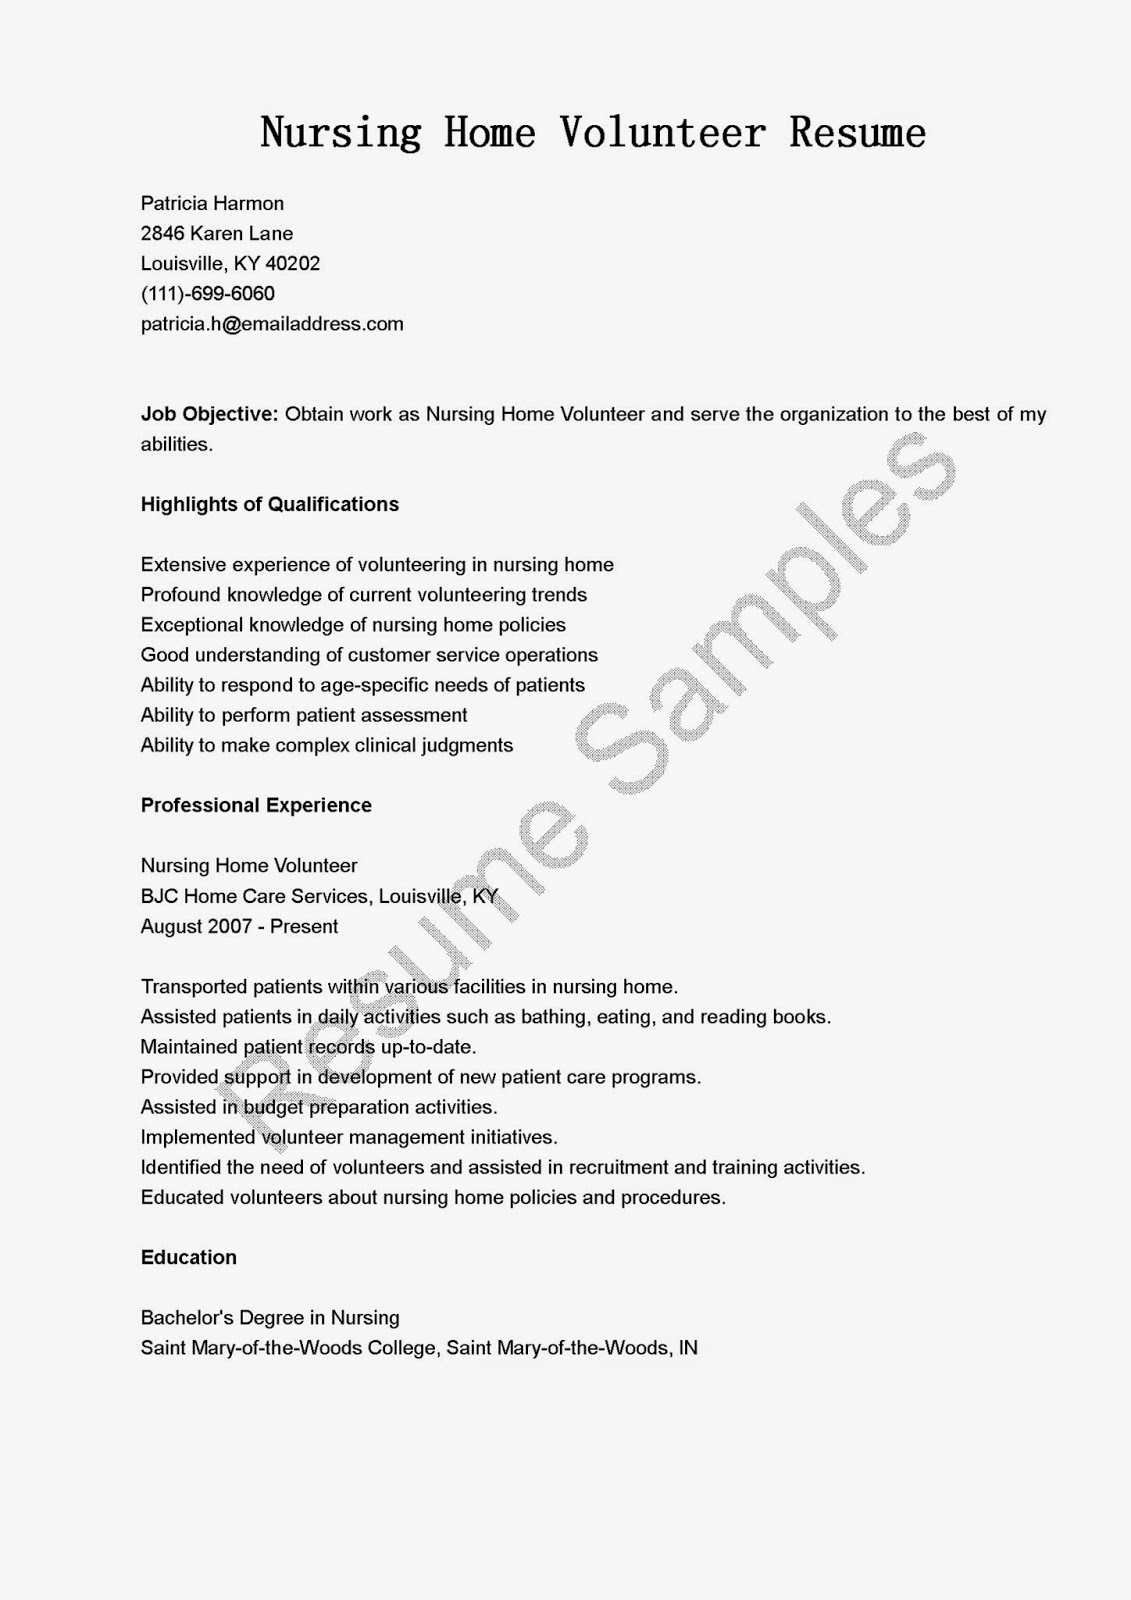 Resume Samples Nursing Home Volunteer Resume Sample